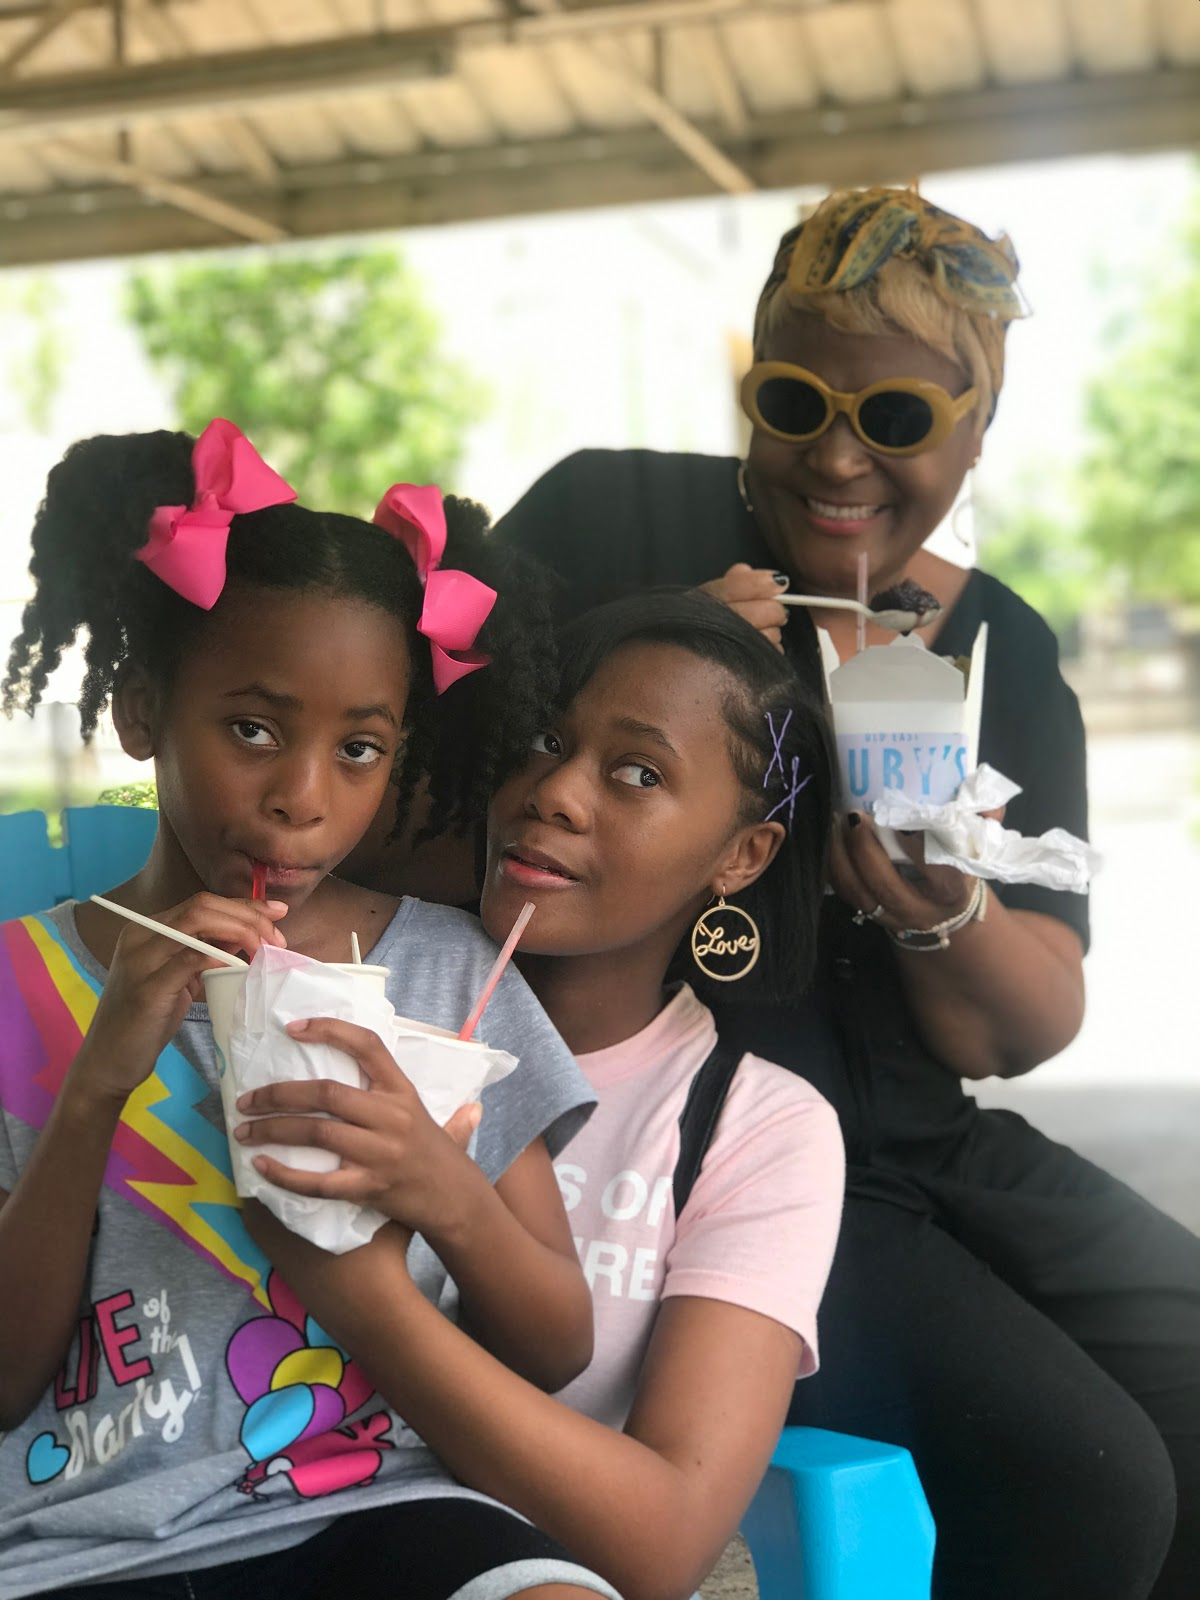 Image: Tangie and Two daughters laughing and eating snow cones